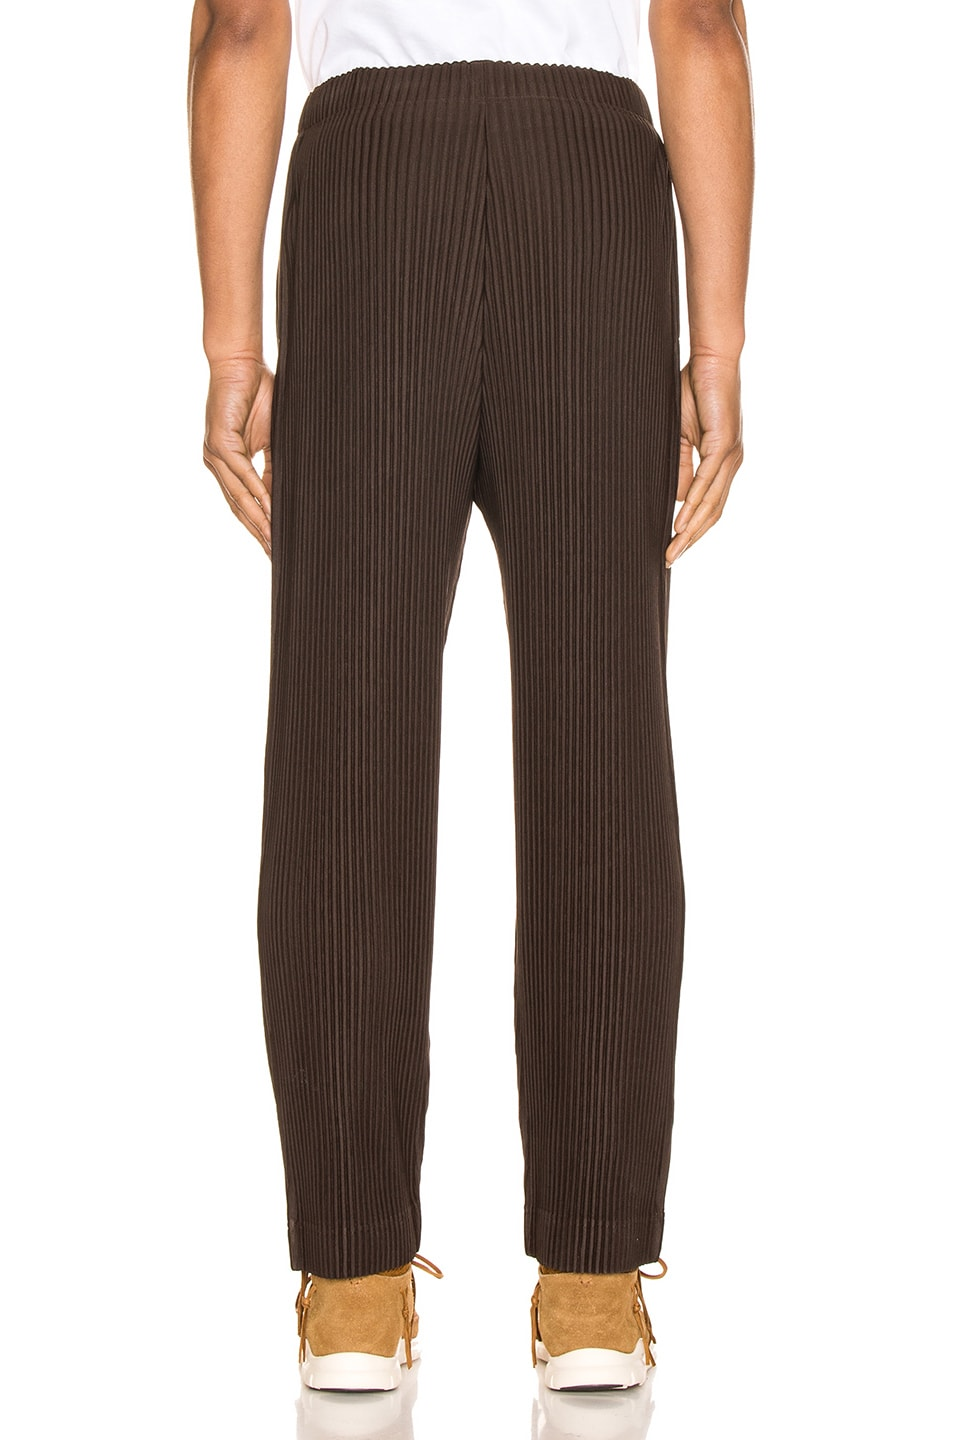 Image 3 of Issey Miyake Homme Plisse Trousers in Chocolate Brown